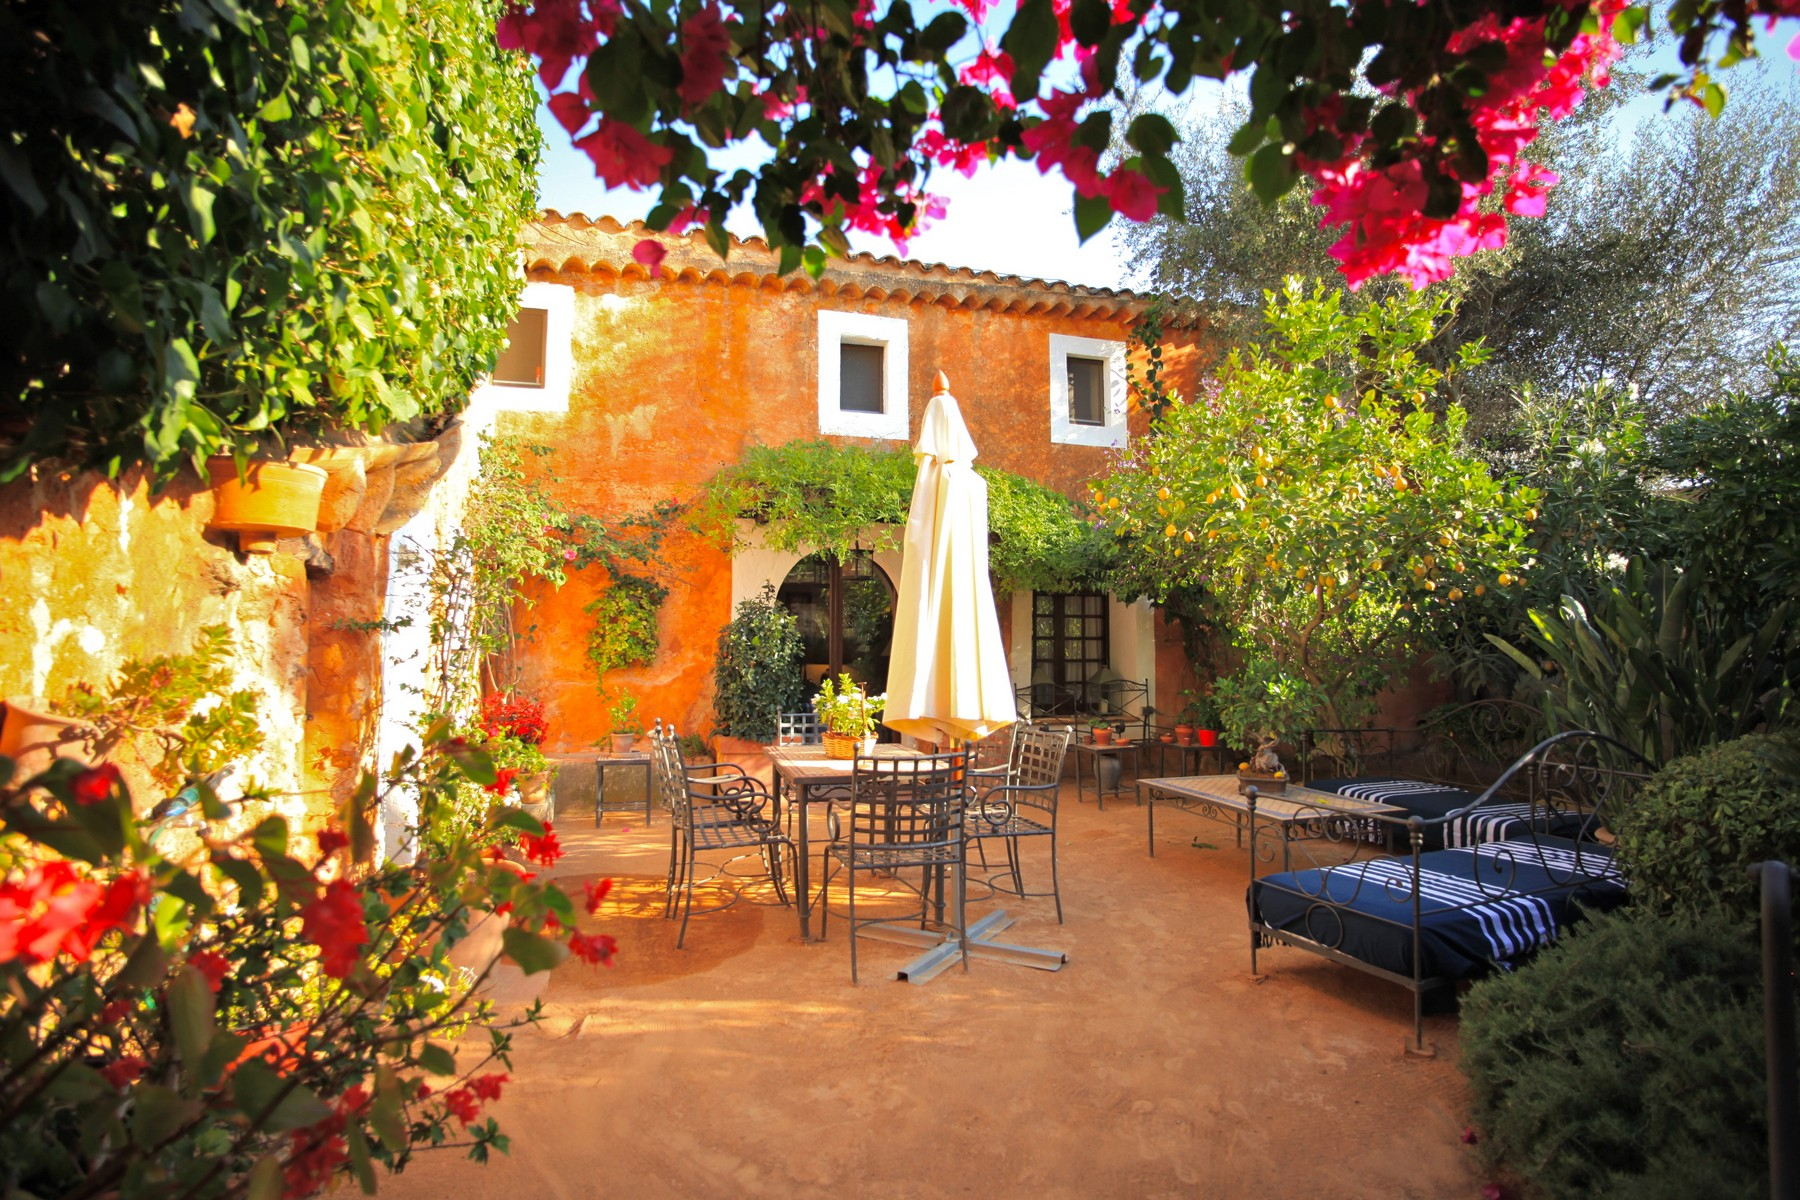 Single Family Home for Sale at Harmonious country estate in Santa Maria Santa Maria Del Cami, Mallorca, 07001 Spain